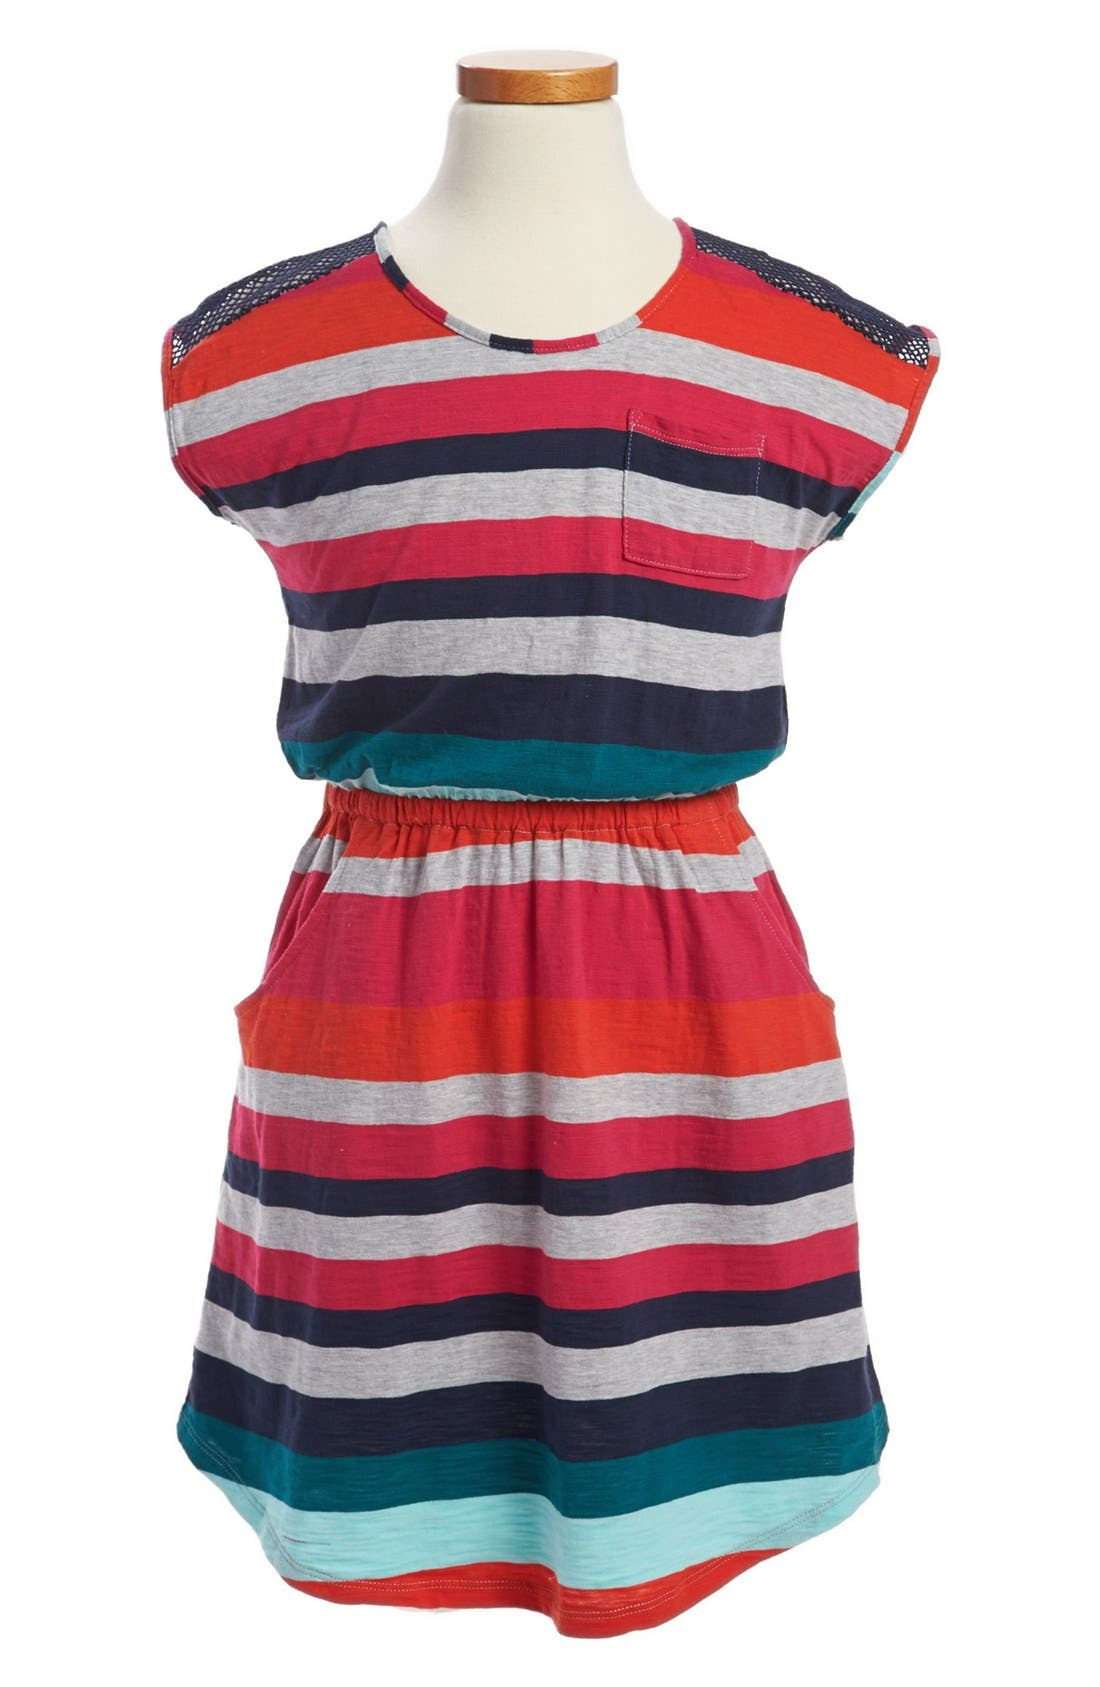 Main Image - Roxy 'First Glance' Knit Dress (Big Girls)